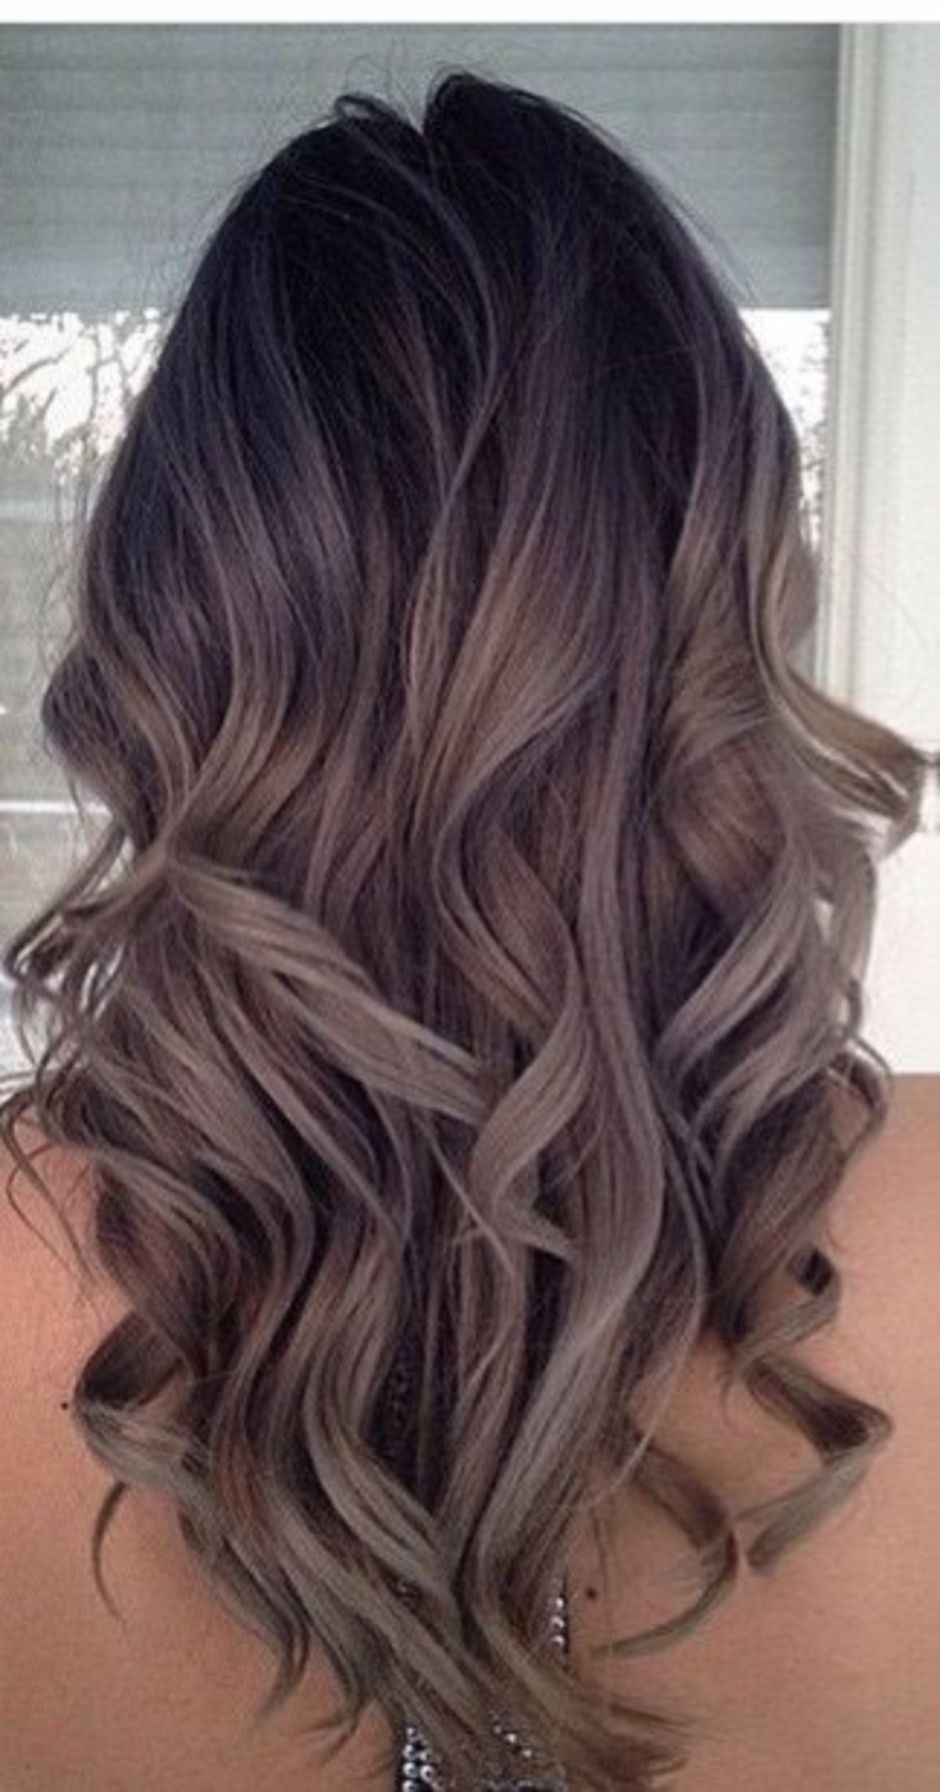 Ideas Mushroom Brown Hair That Makes You Look Stunning 4